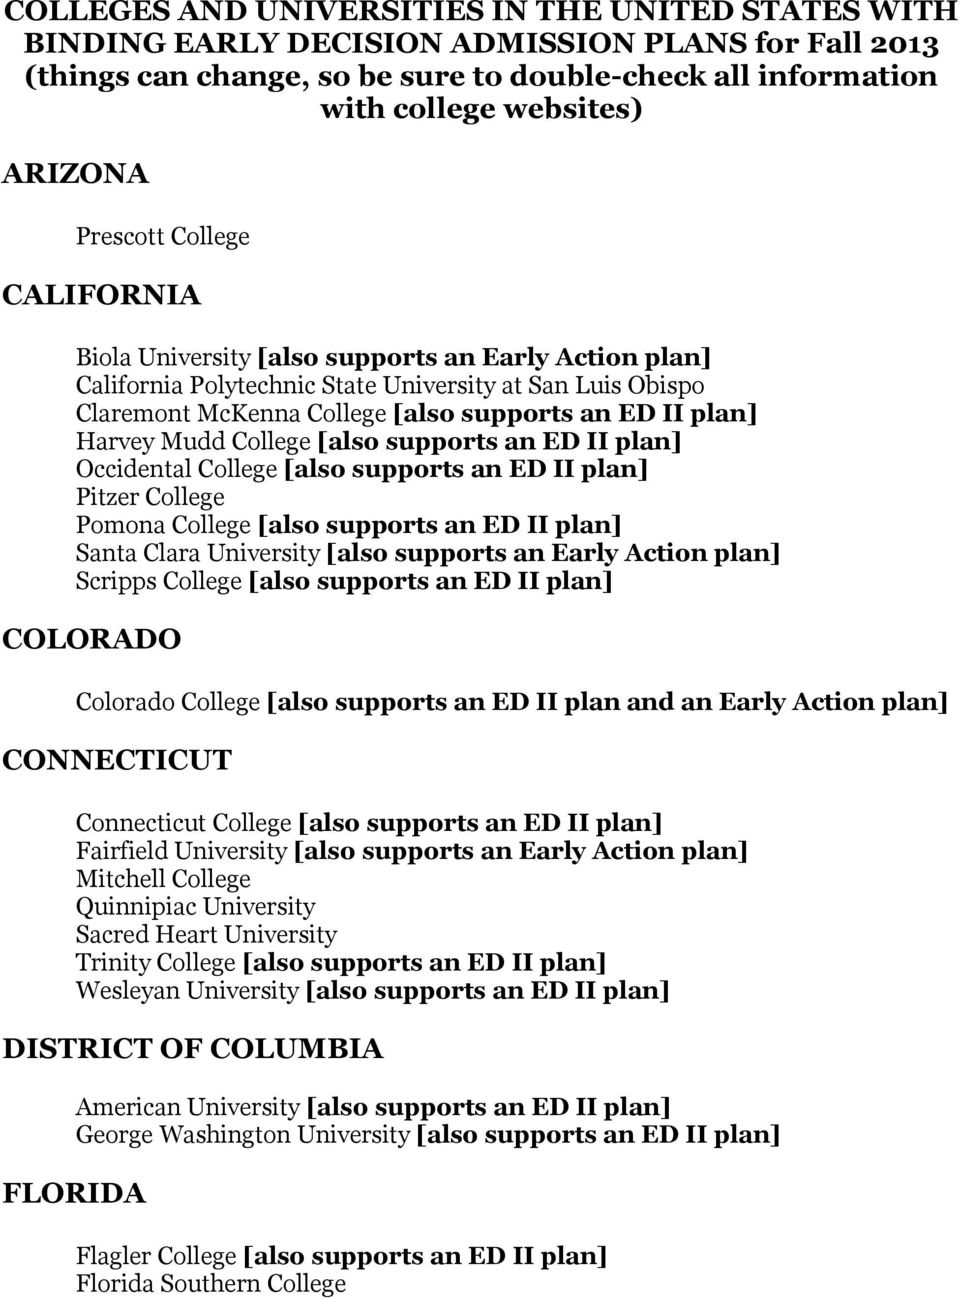 Harvey Mudd College [also supports an ED II plan] Occidental College [also supports an ED II plan] Pitzer College Pomona College [also supports an ED II plan] Santa Clara University [also supports an